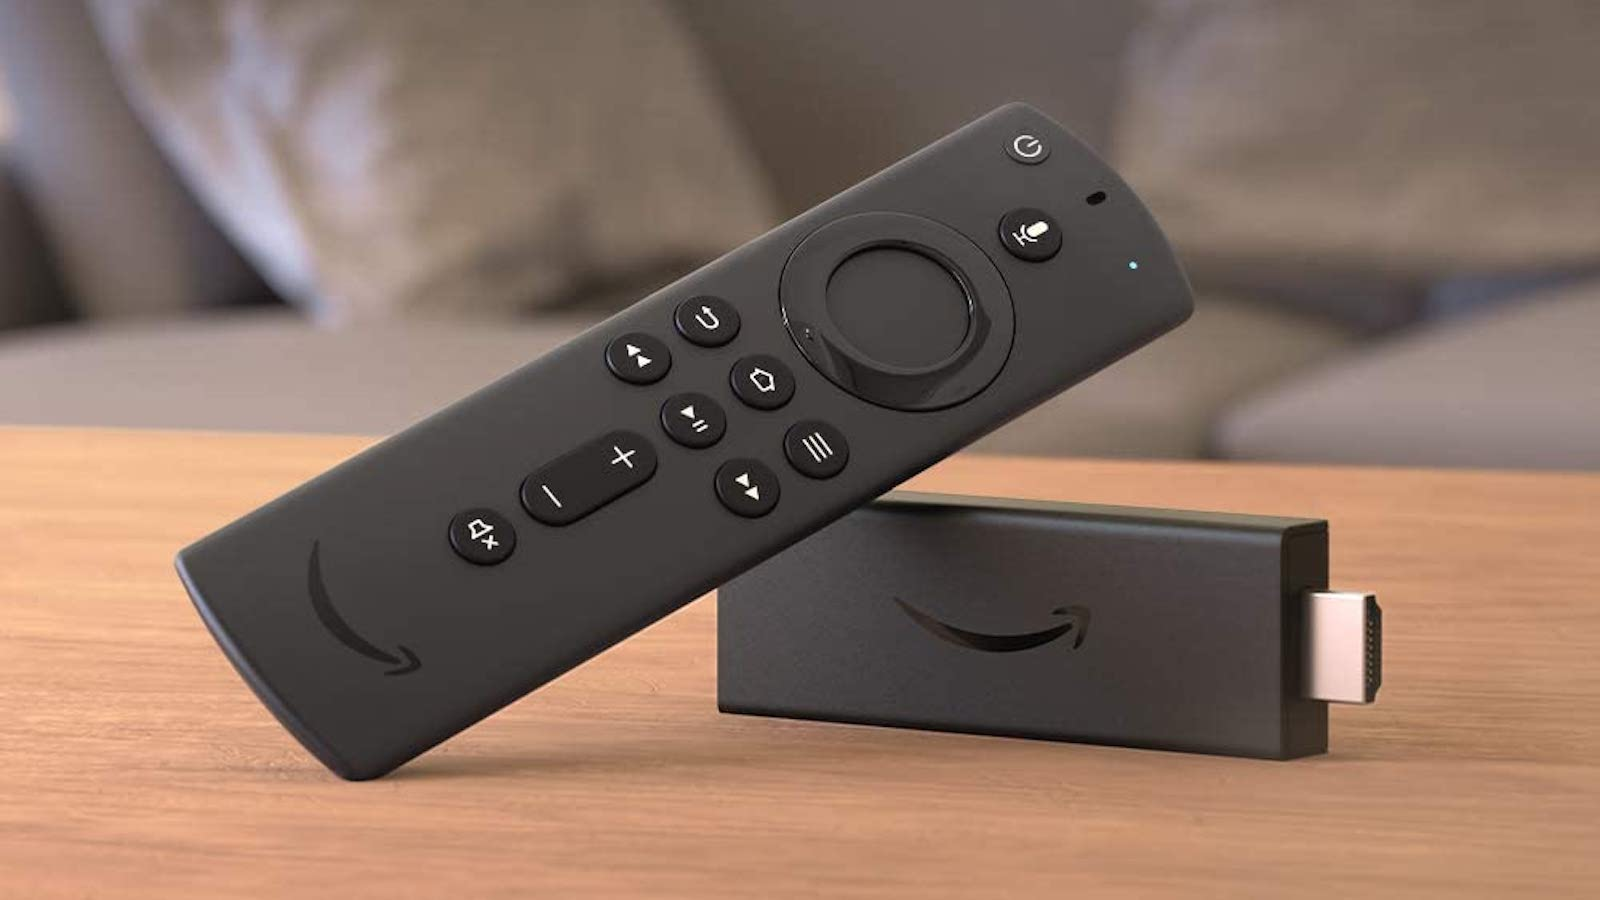 Amazon All-New Fire TV Stick comes with the Alexa Voice Remote